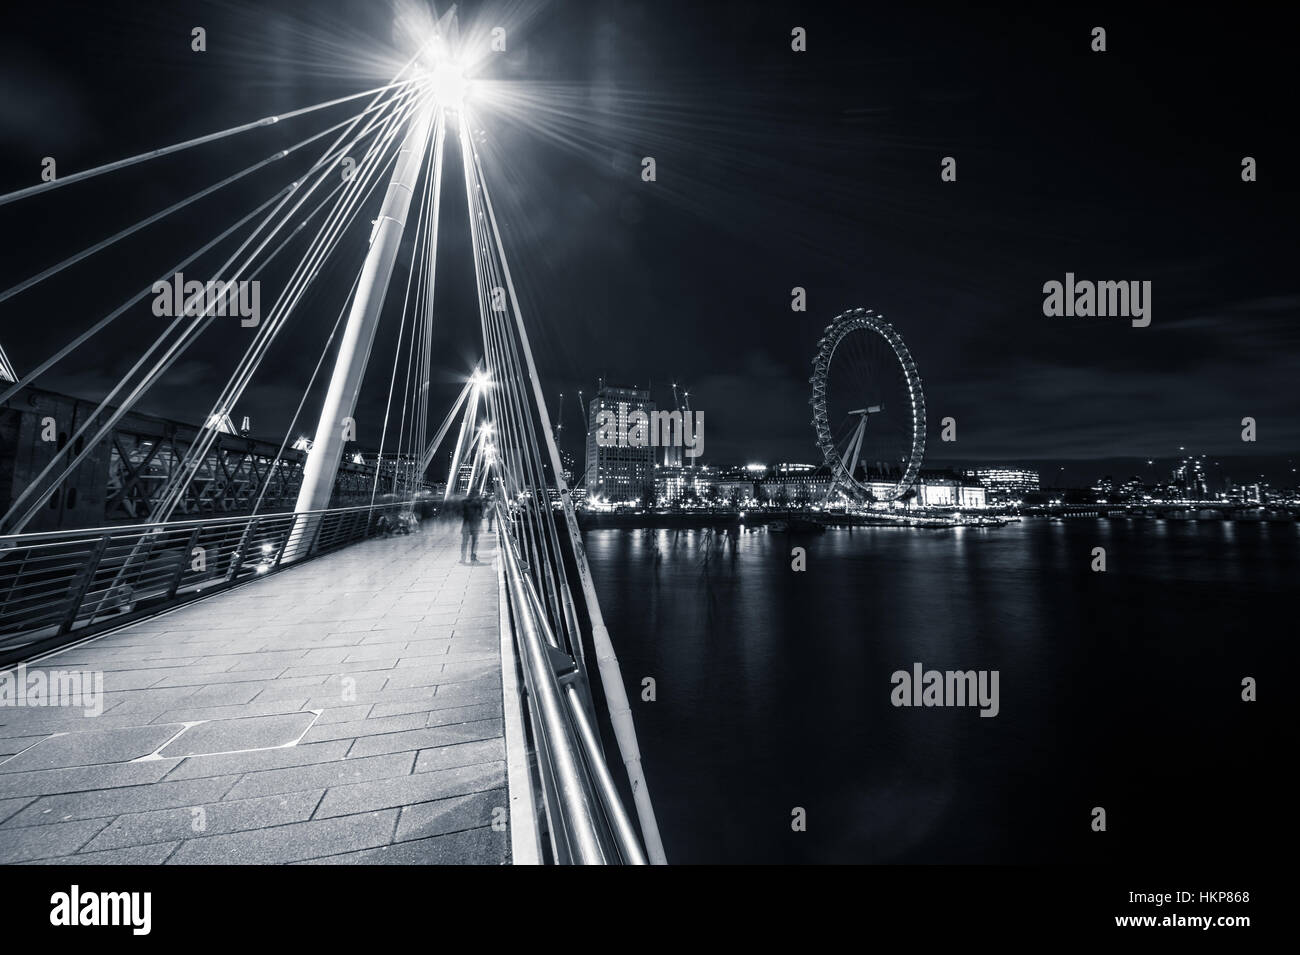 View of the London eye from the golden Jubilee bridge. - Stock Image